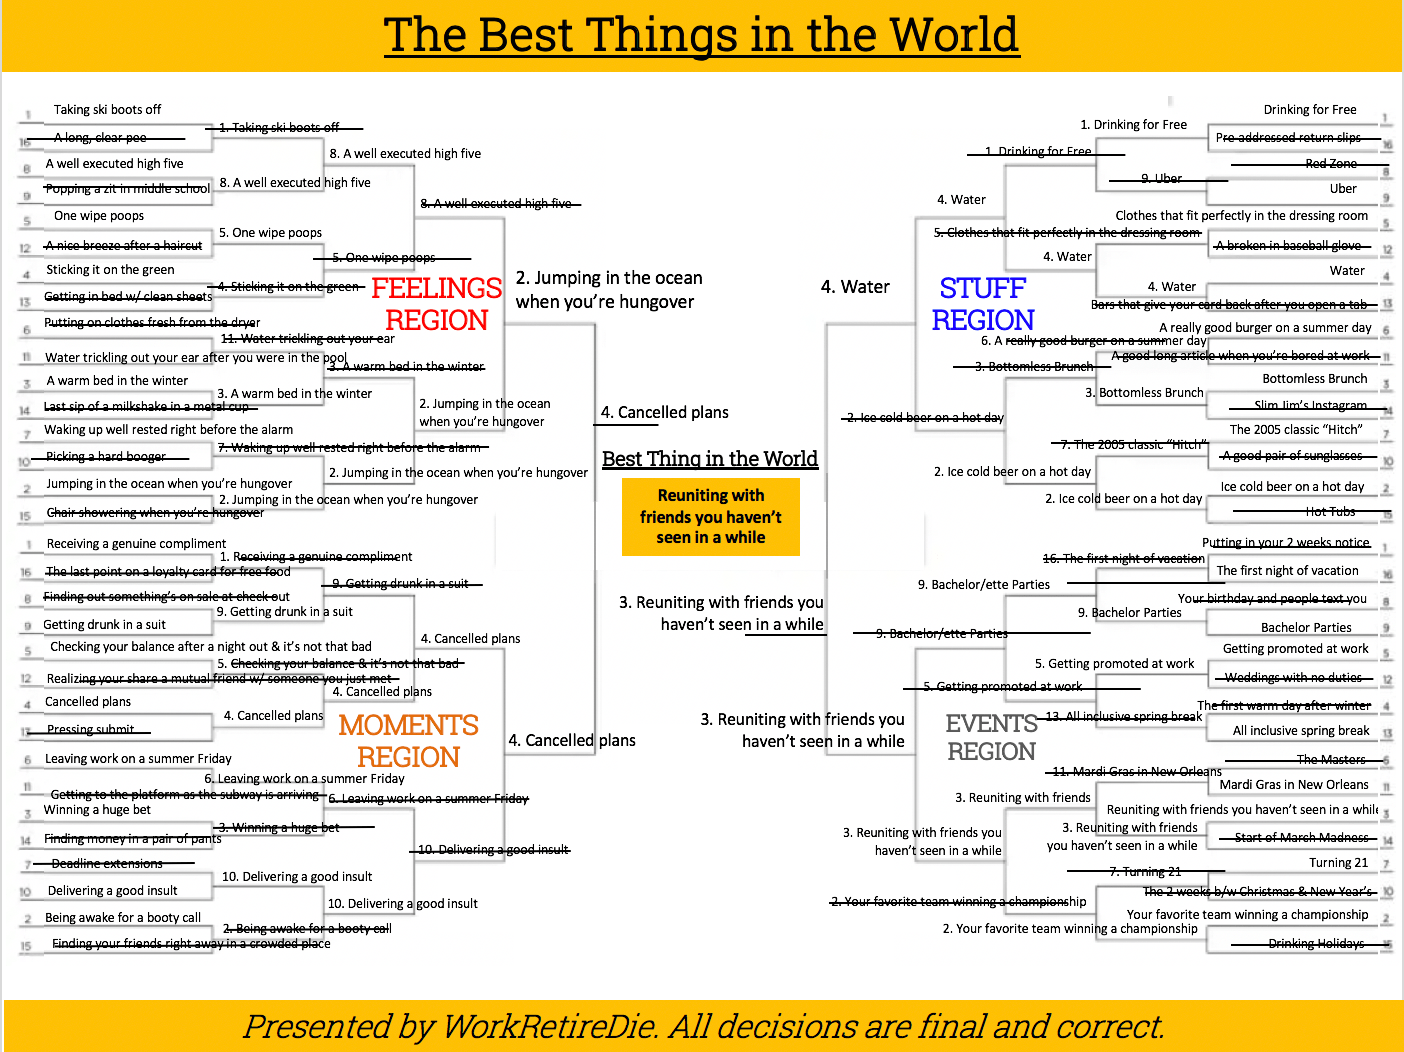 The Best Things in the World: National Champion